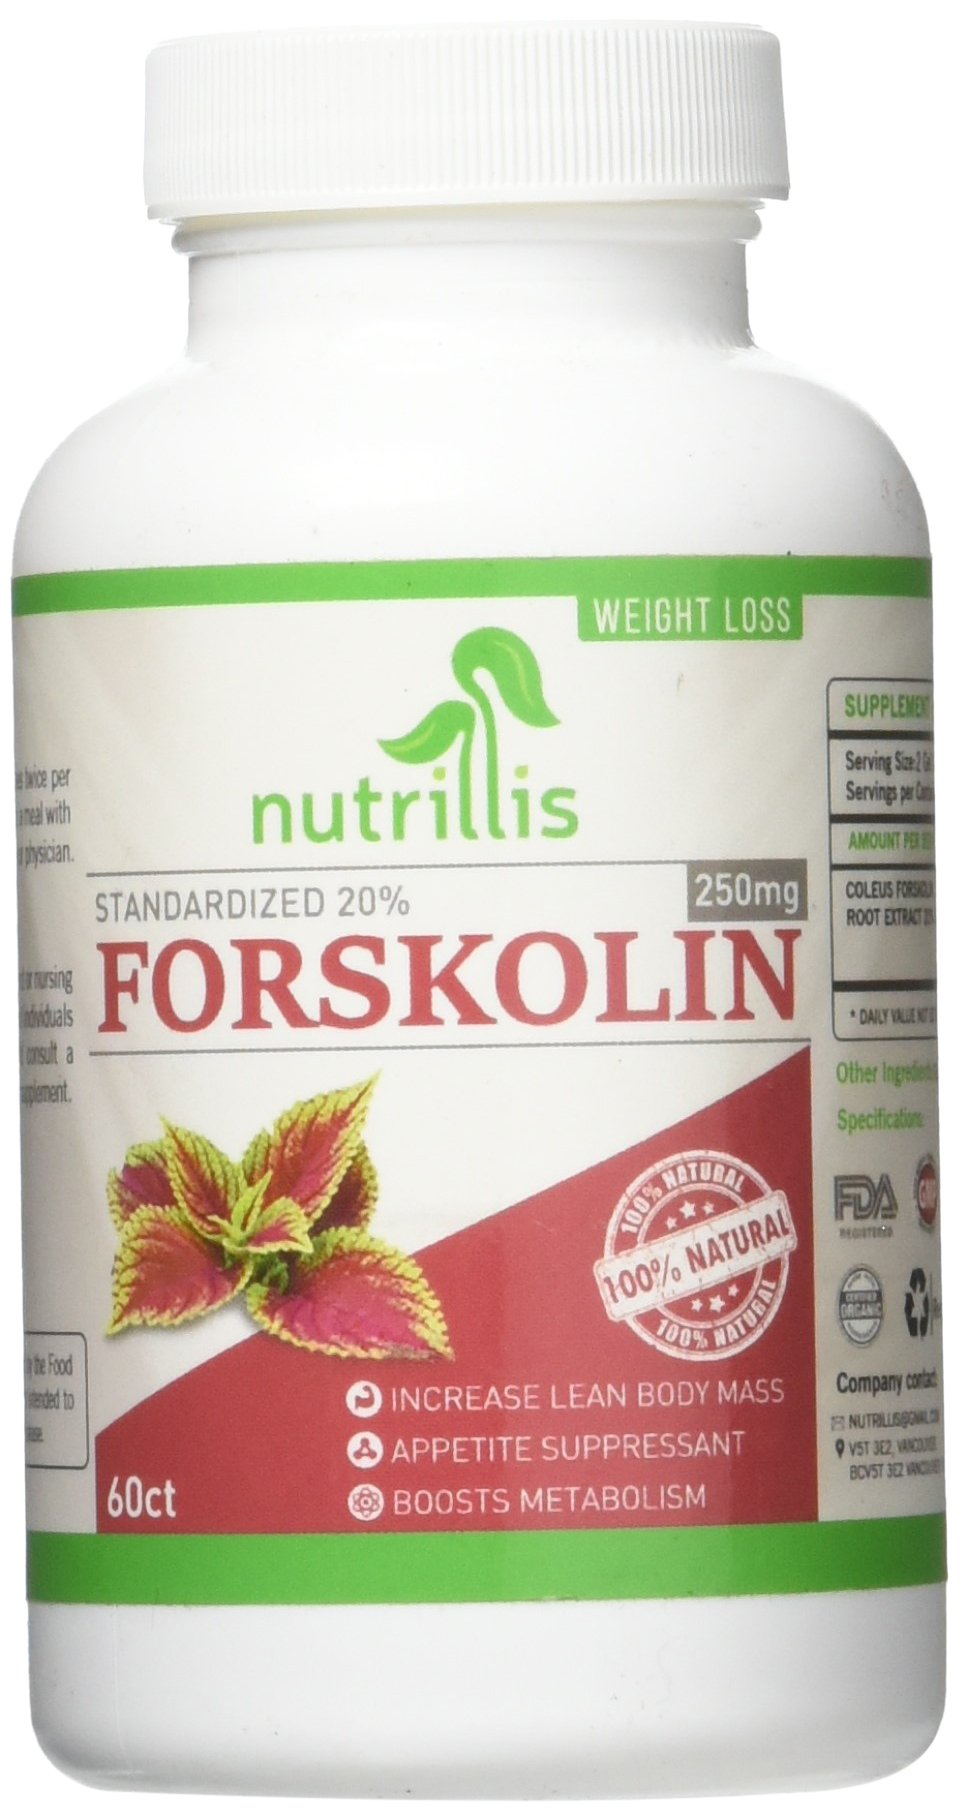 Non Gmo, 100% Pure Forskolin Extract, Standardized to 20%, For Carb Blocker, Natural Organic, Weight Loss Pills for Men and Women, Stomach Fat Burner, Appetite Suppressant,Metabolism Booster